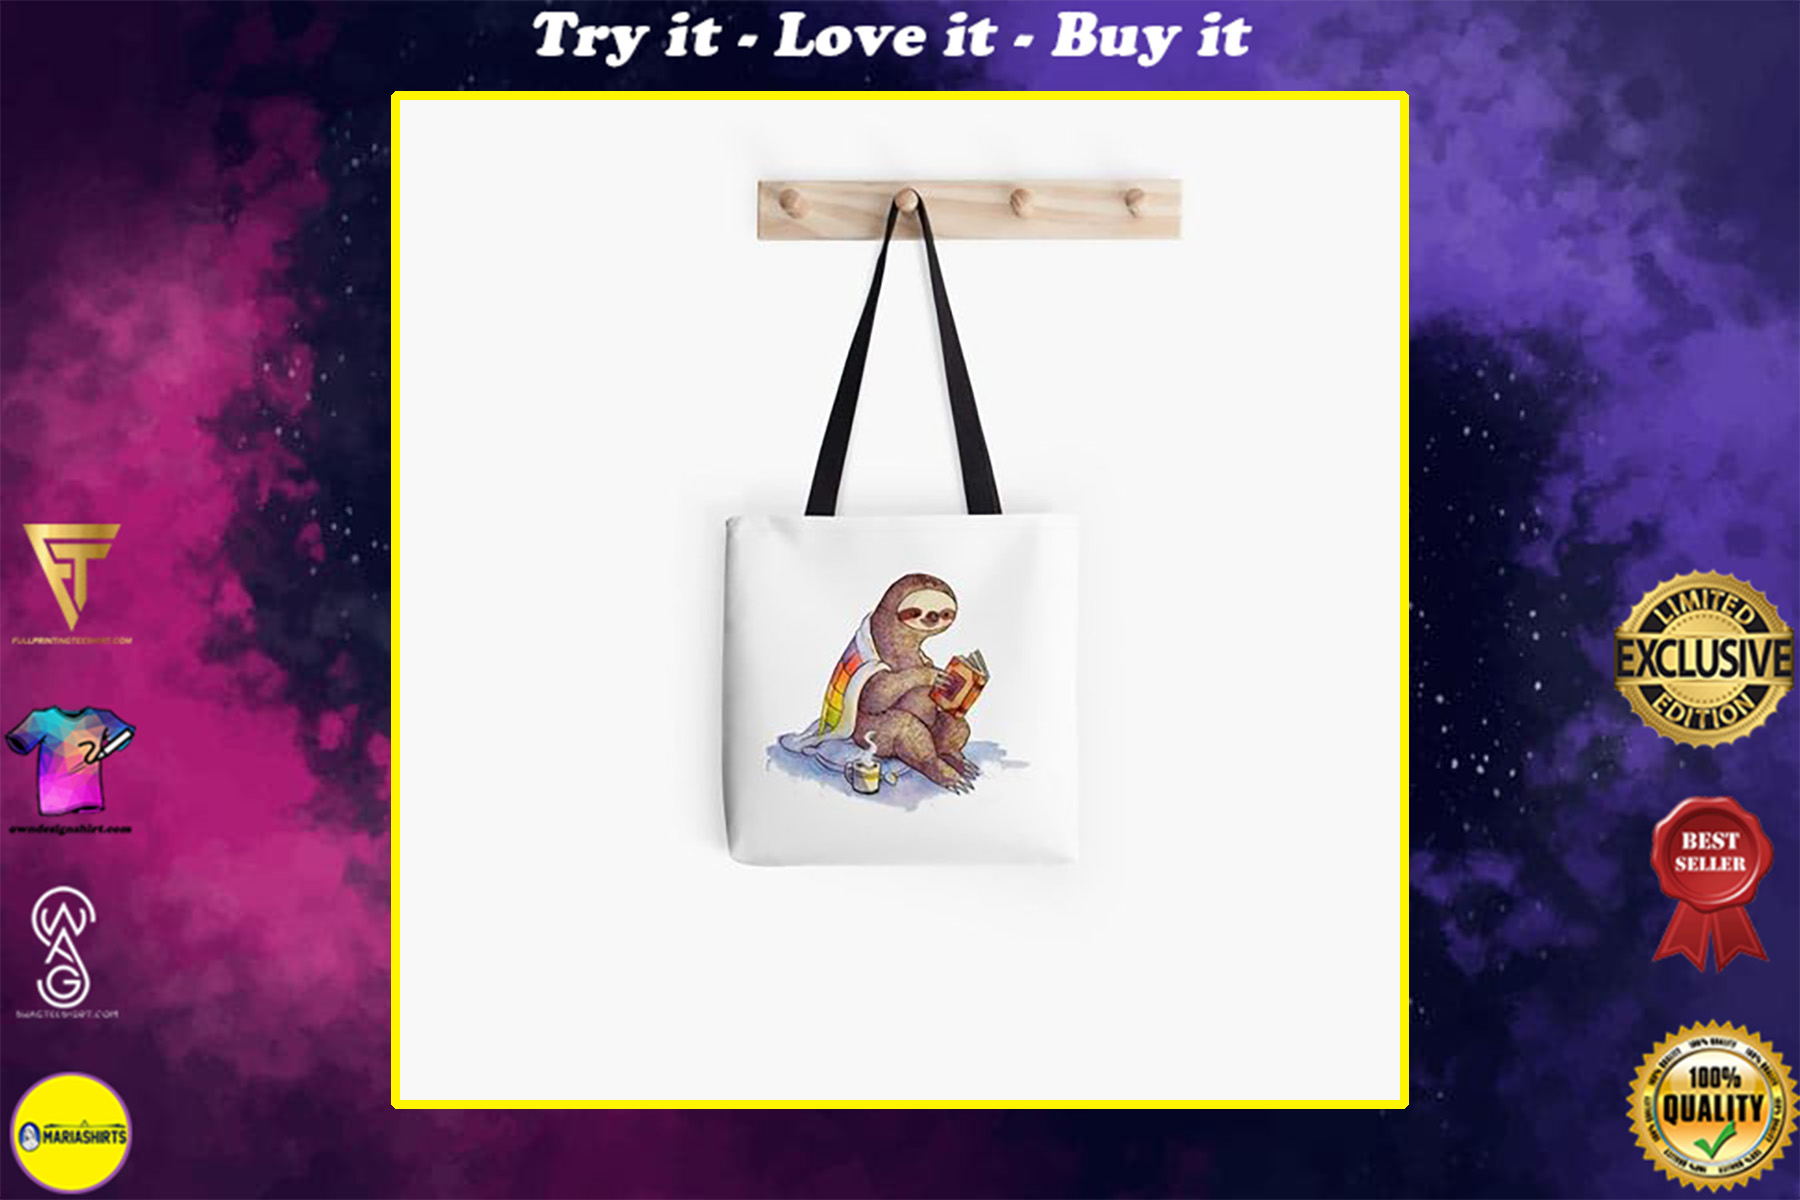 book lovers reading cozy sloth reads book all over printed tote bag